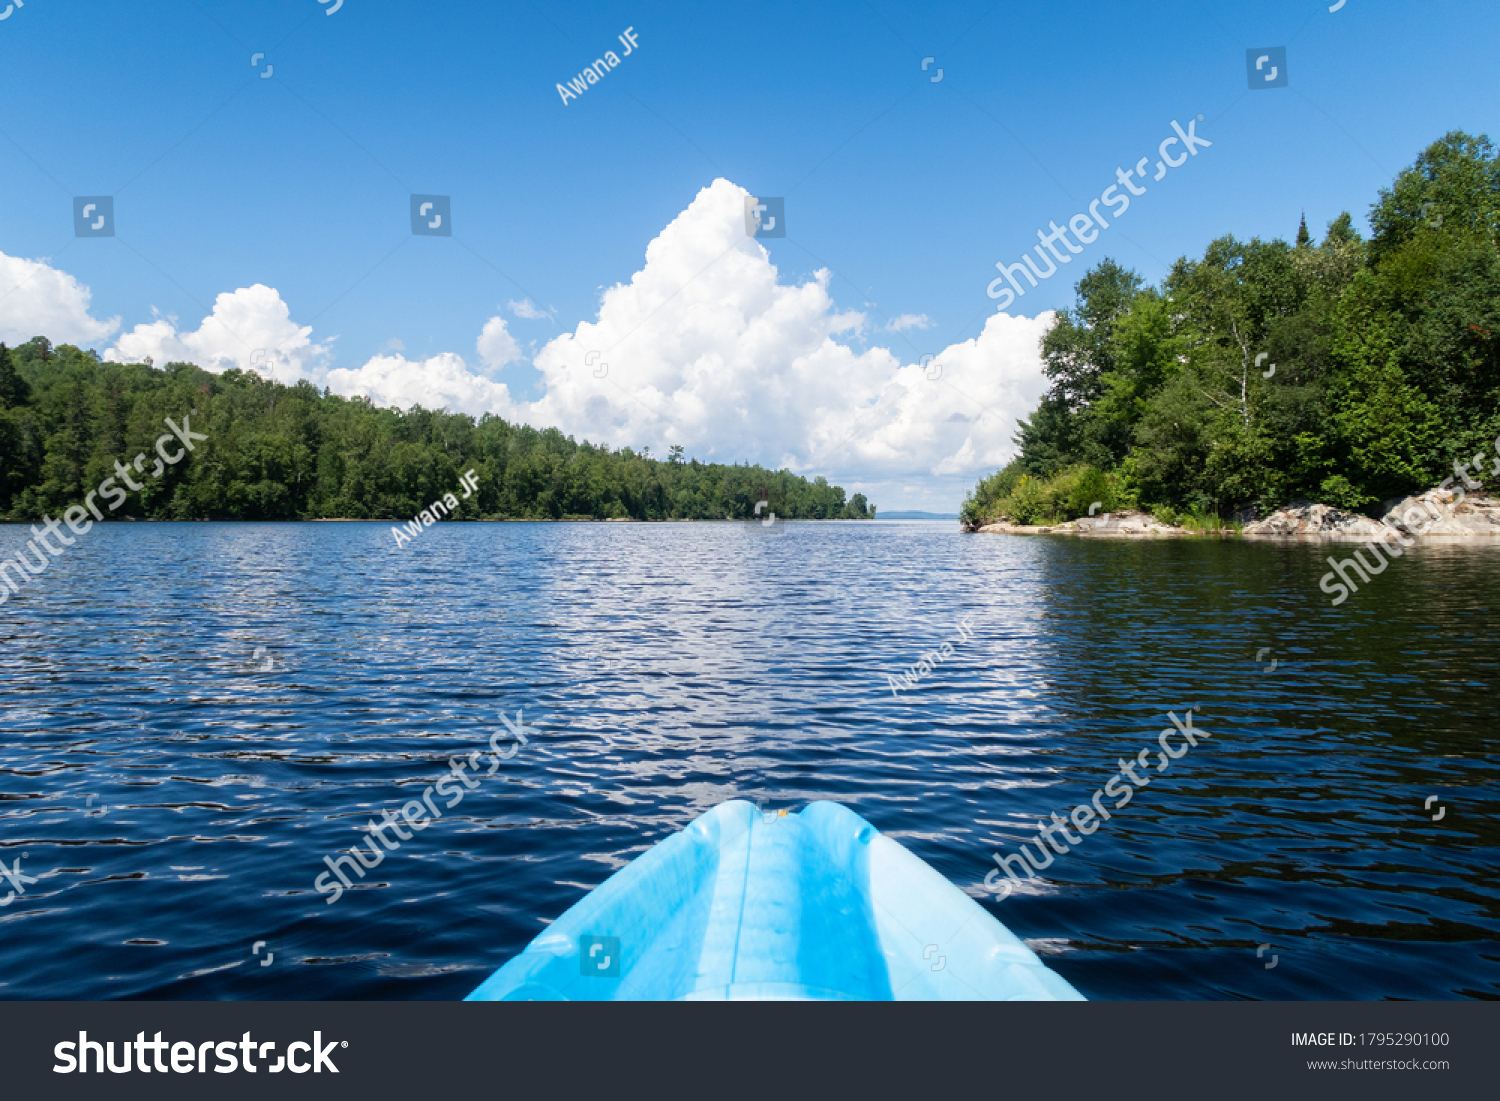 stock-photo-view-of-the-front-of-a-kayak